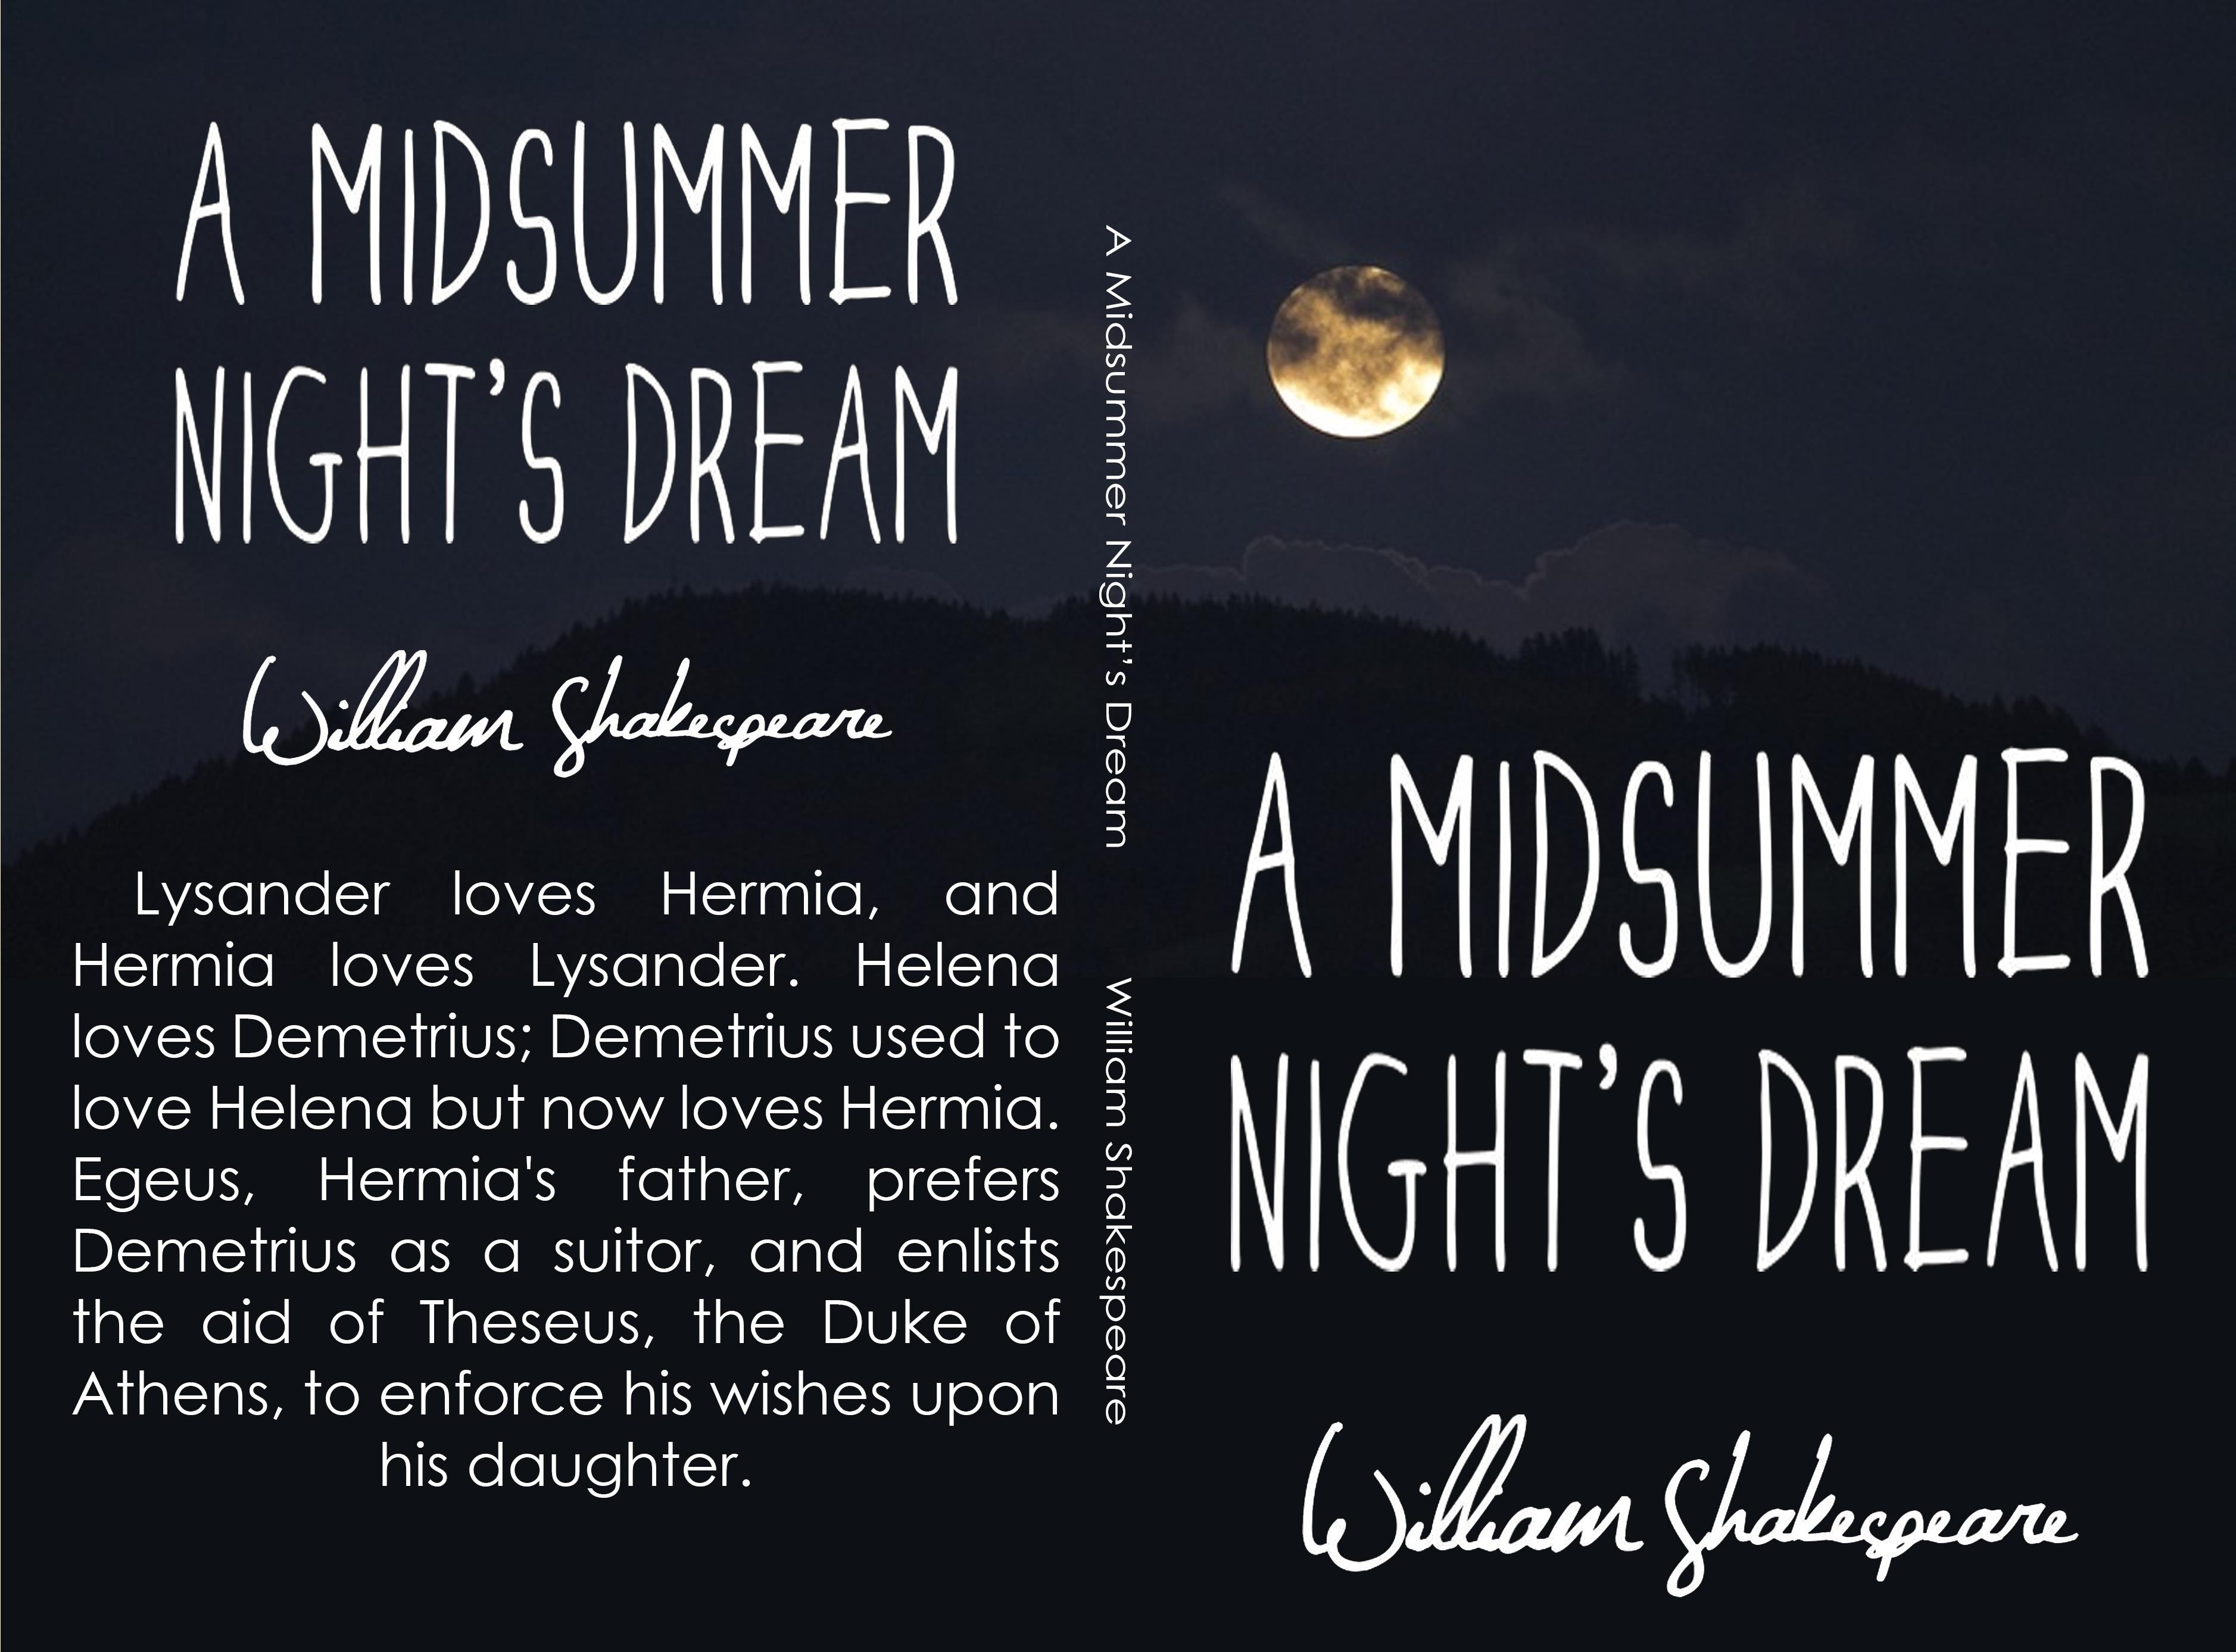 themes in a midsummers nightdream A midsummer night's dream read the sparknote.